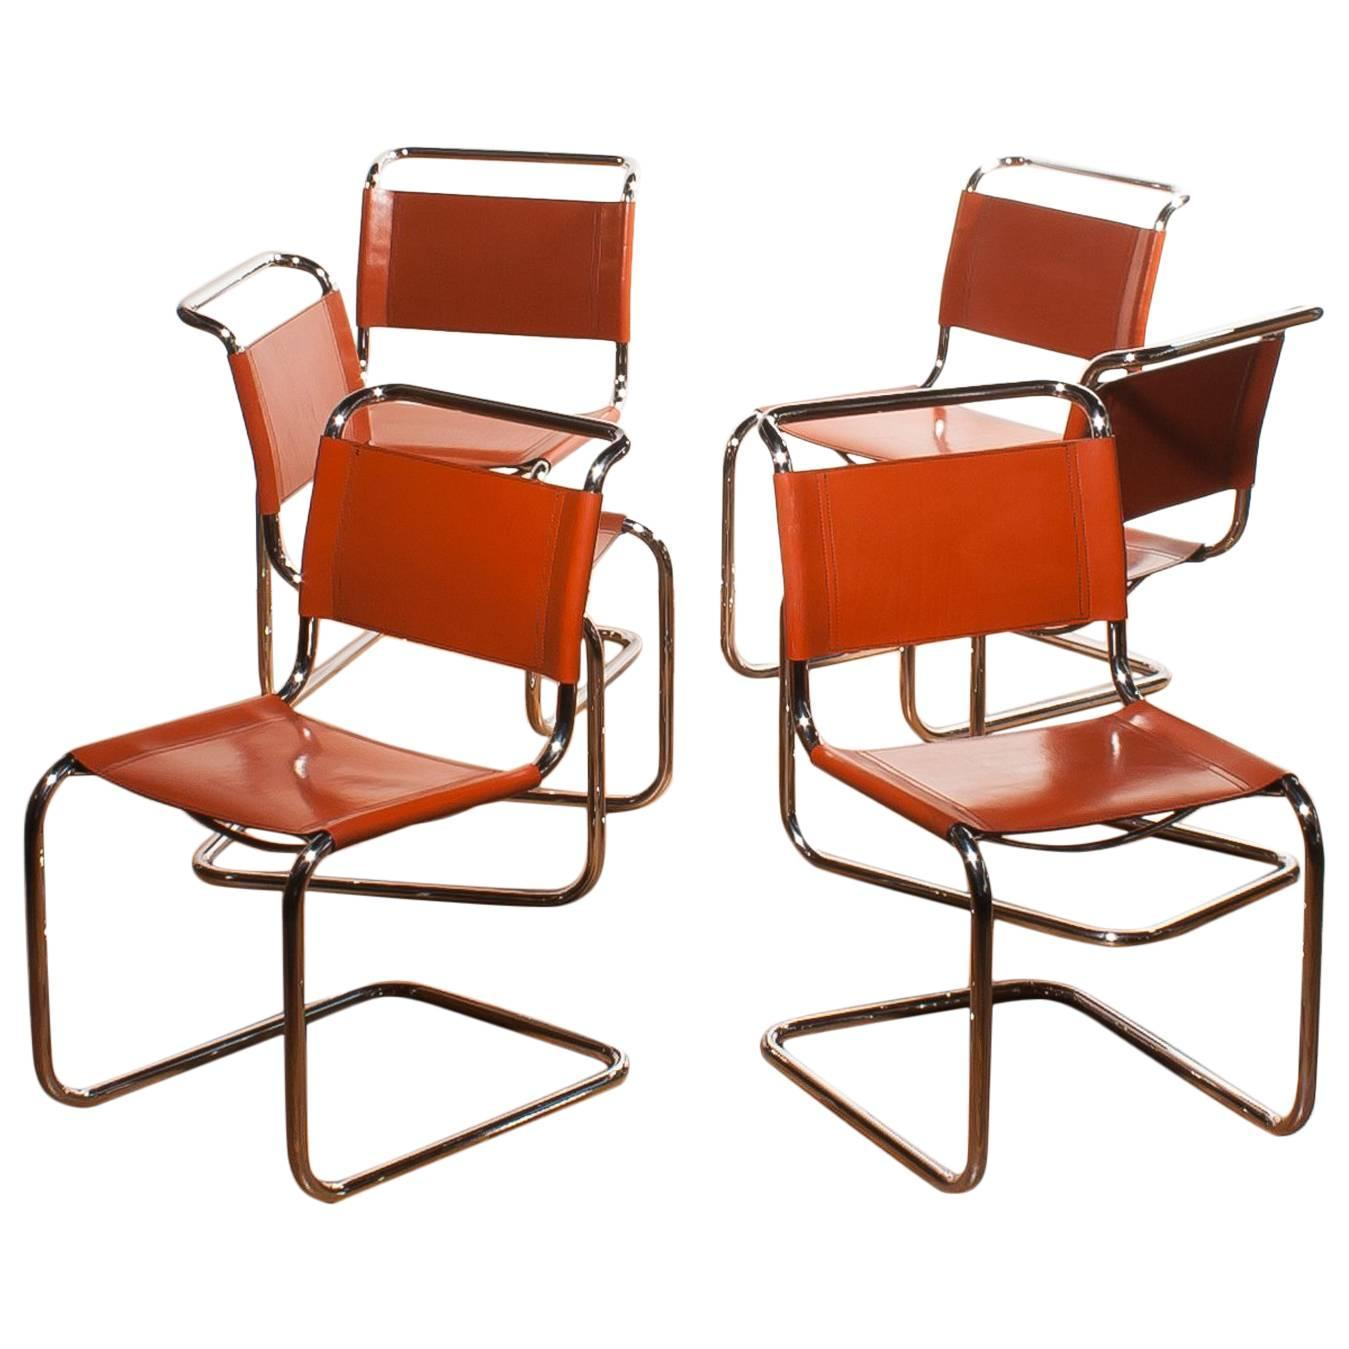 Bauhaus tubular steel lounge chair at 1stdibs - 1970s Set Of Six Tubular Dining Chairs By Mart Stam For Fasem In Cognac Leather